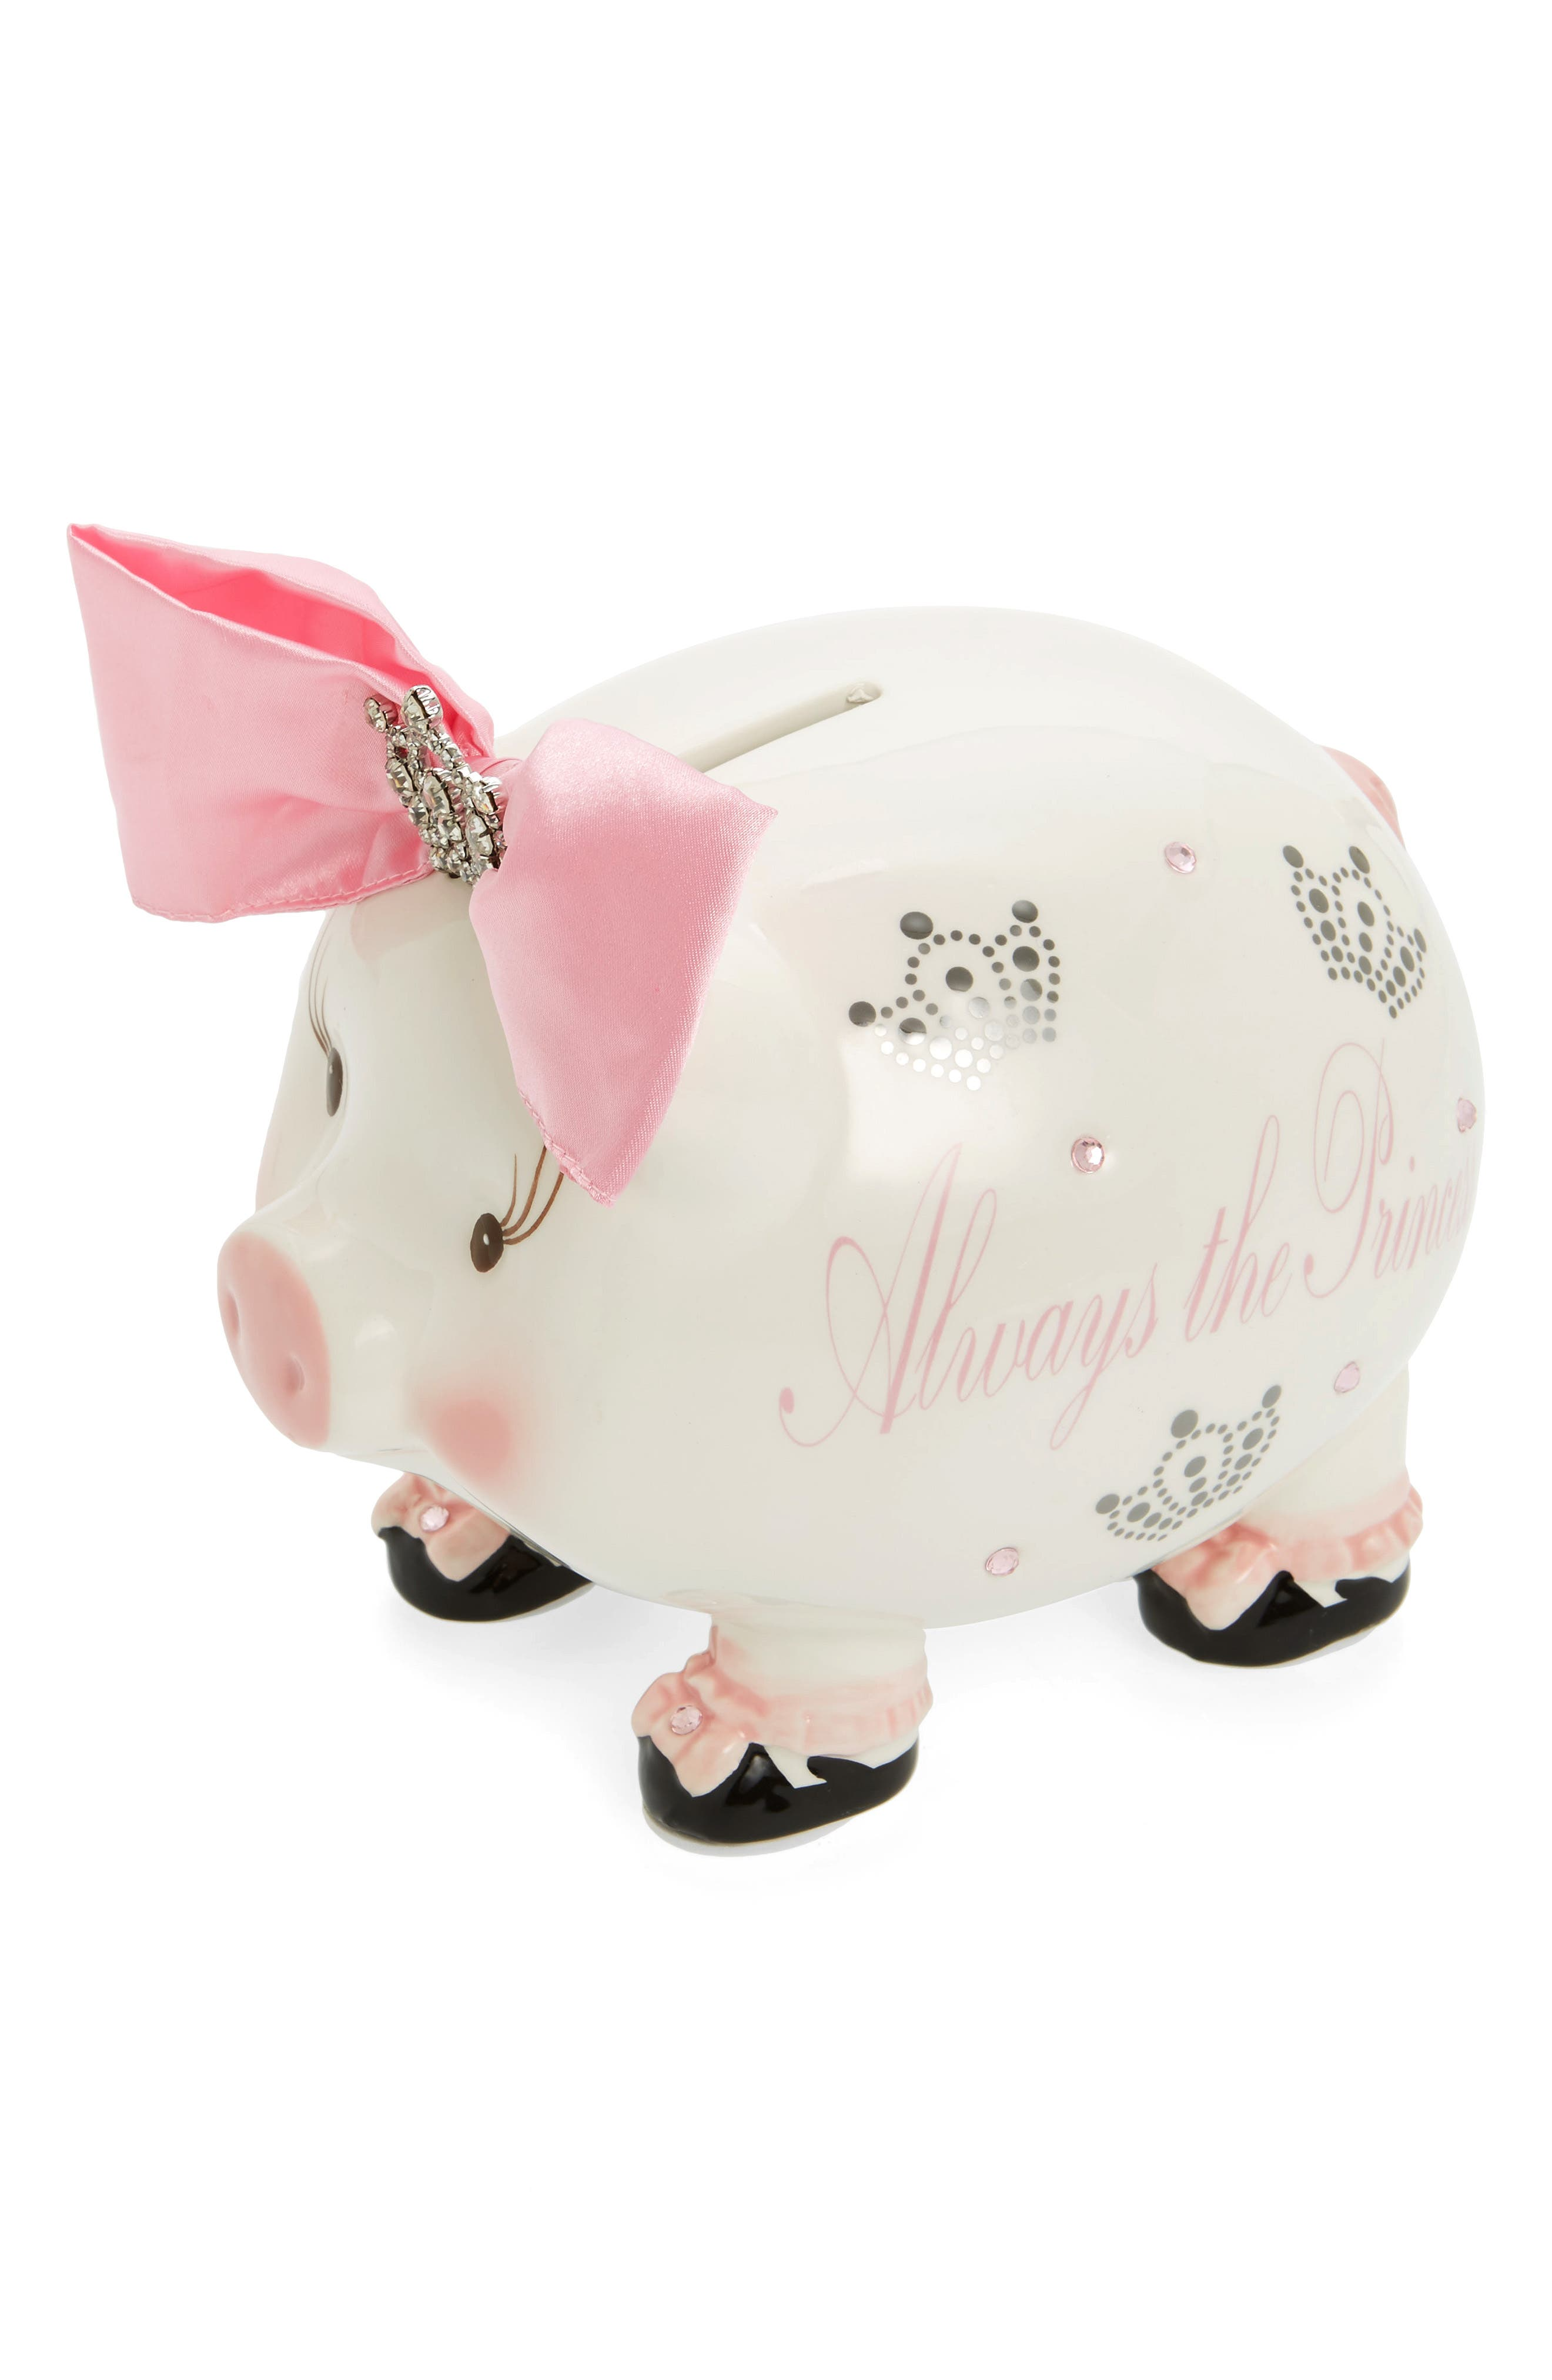 'Always the Princess' Jeweled Piggy Bank,                             Alternate thumbnail 2, color,                             PINK/ IVORY